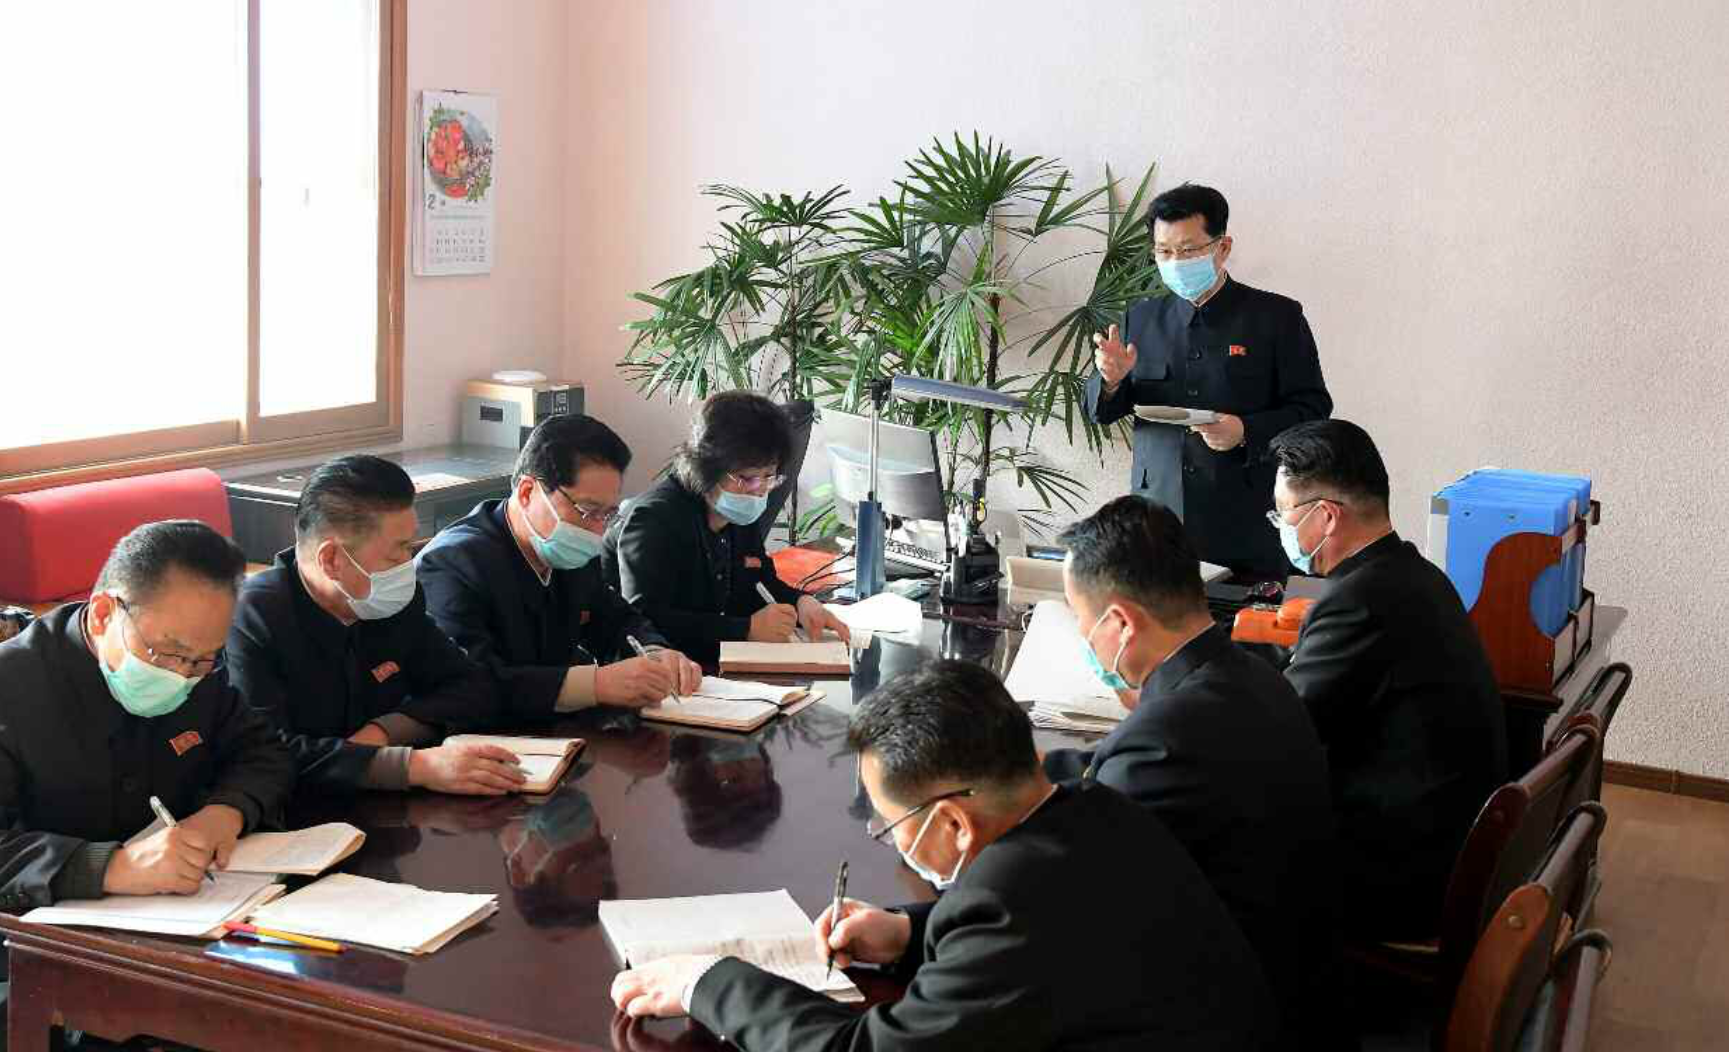 Mask-clad North Korean Premier visits coronavirus quarantine workers